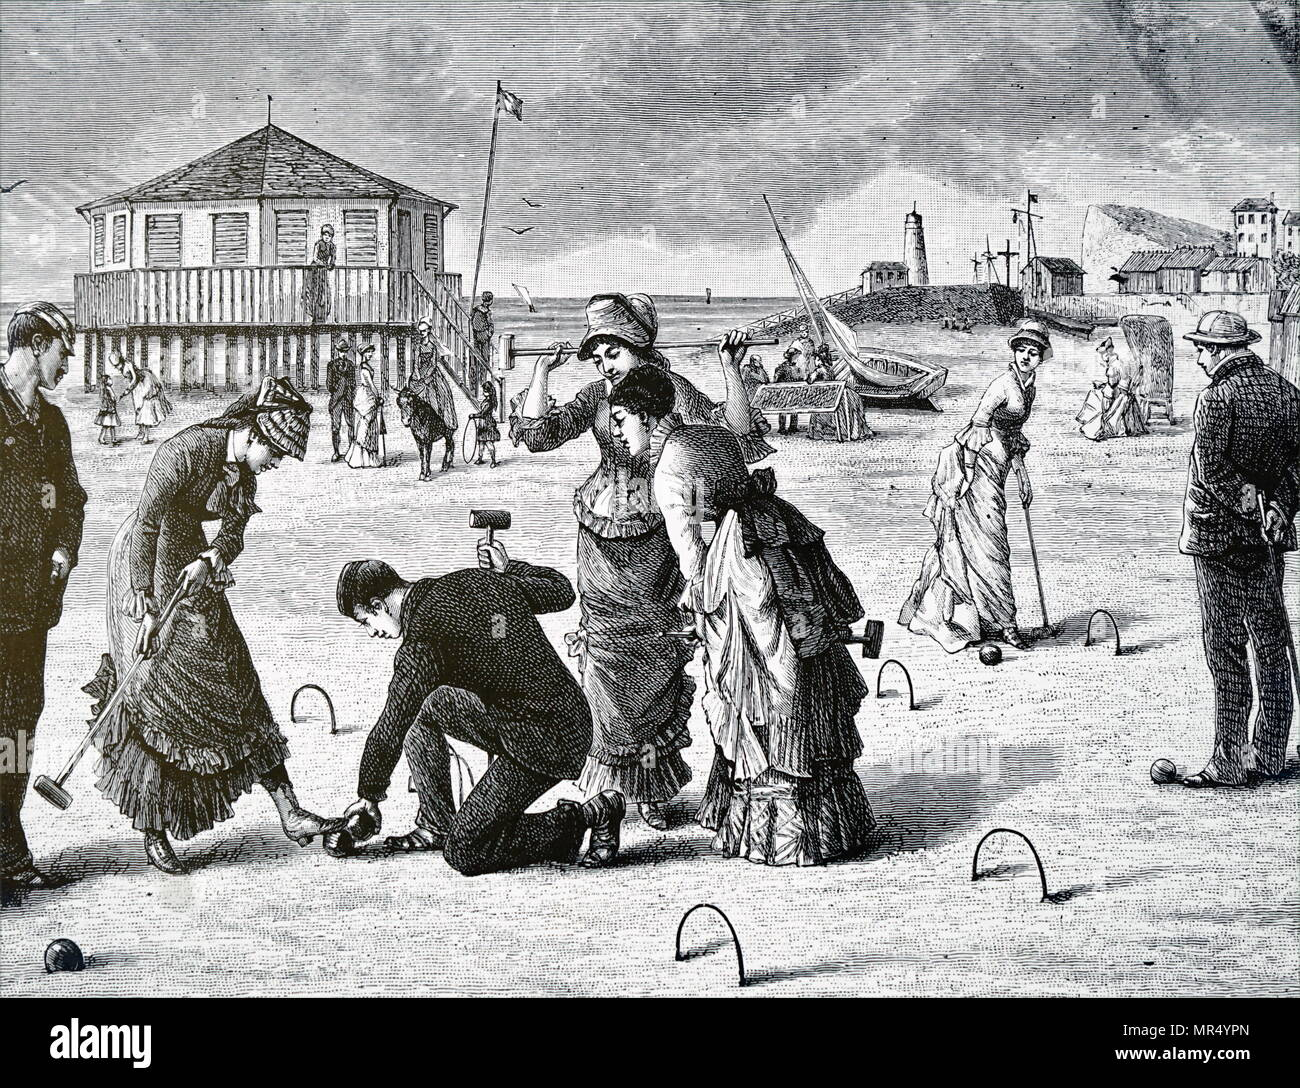 Illustration depicting a game of croquet being played on the beach. Dated 19th century - Stock Image